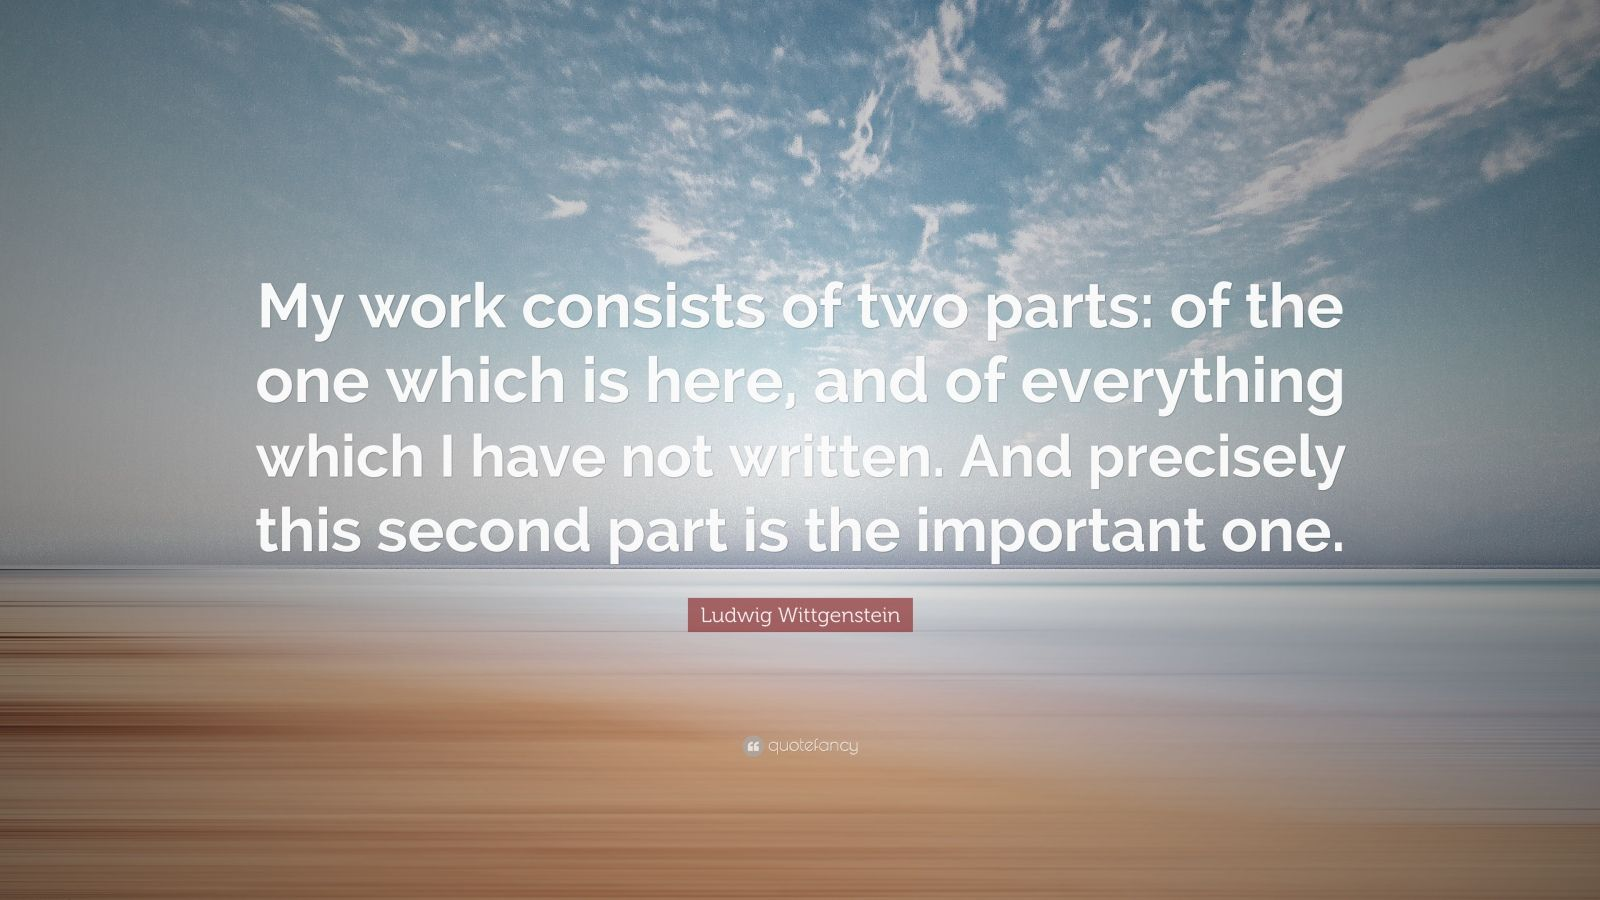 """Ludwig Wittgenstein Quote: """"My work consists of two parts: of the one which is here, and of everything which I have not written. And precisely this second part is the important one."""""""